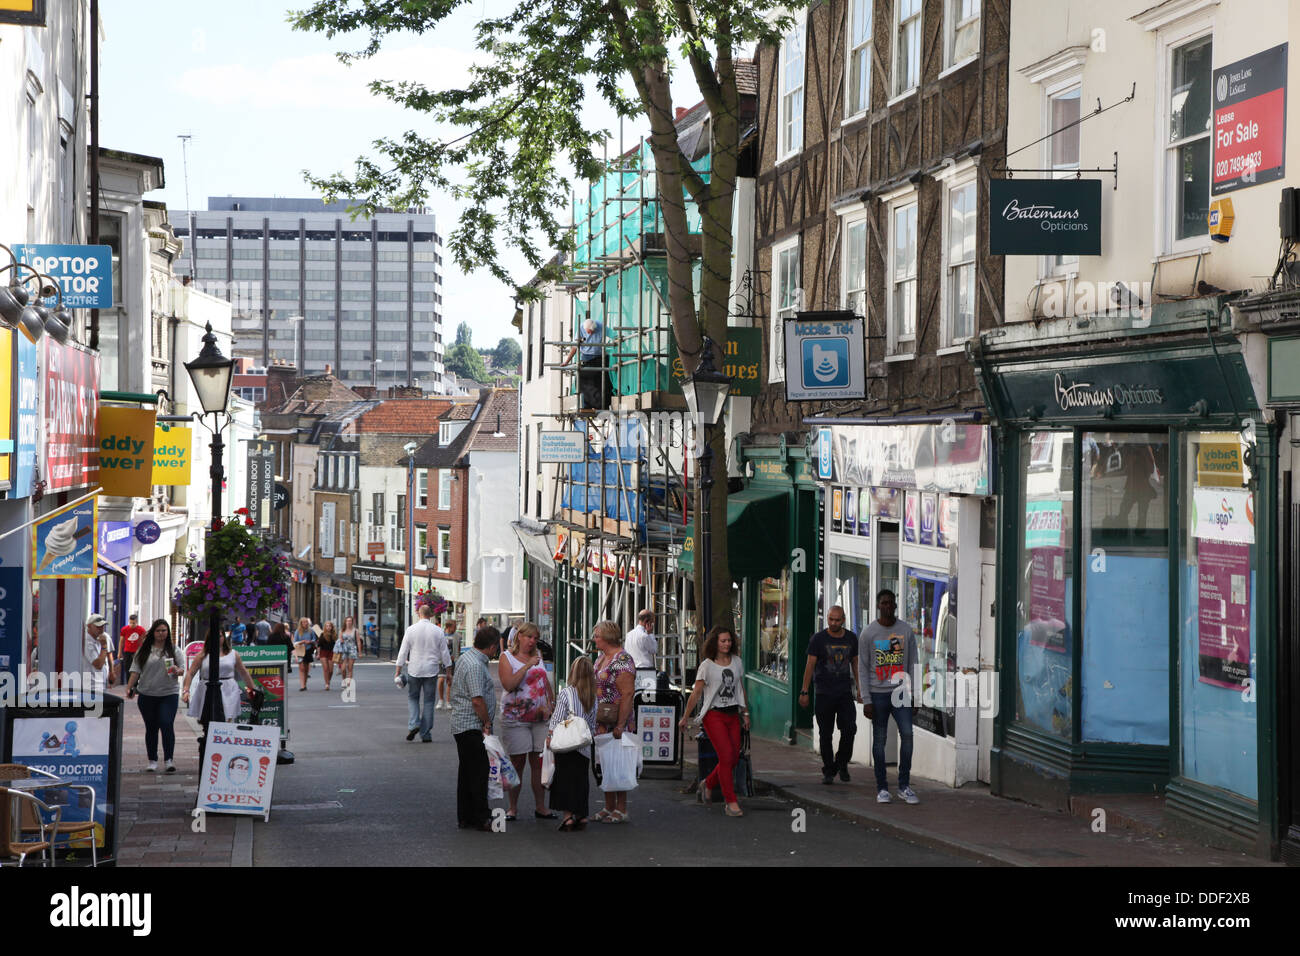 Maidstone Town Centre. A pedestrianized street lends itself to conversations between passing people. - Stock Image